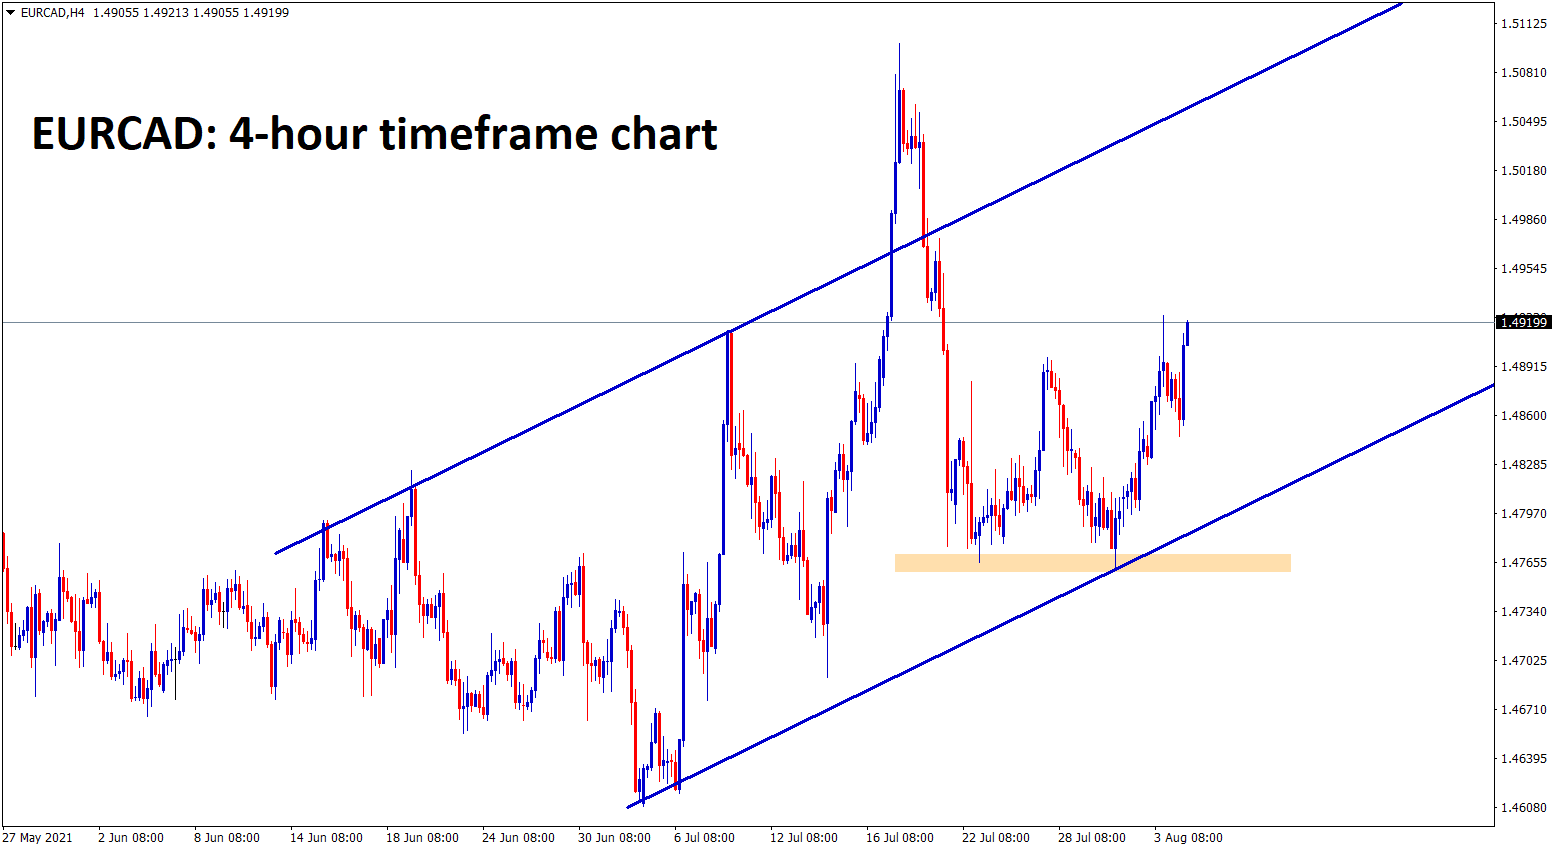 EURCAD continues to rise up in an uptrend channel range